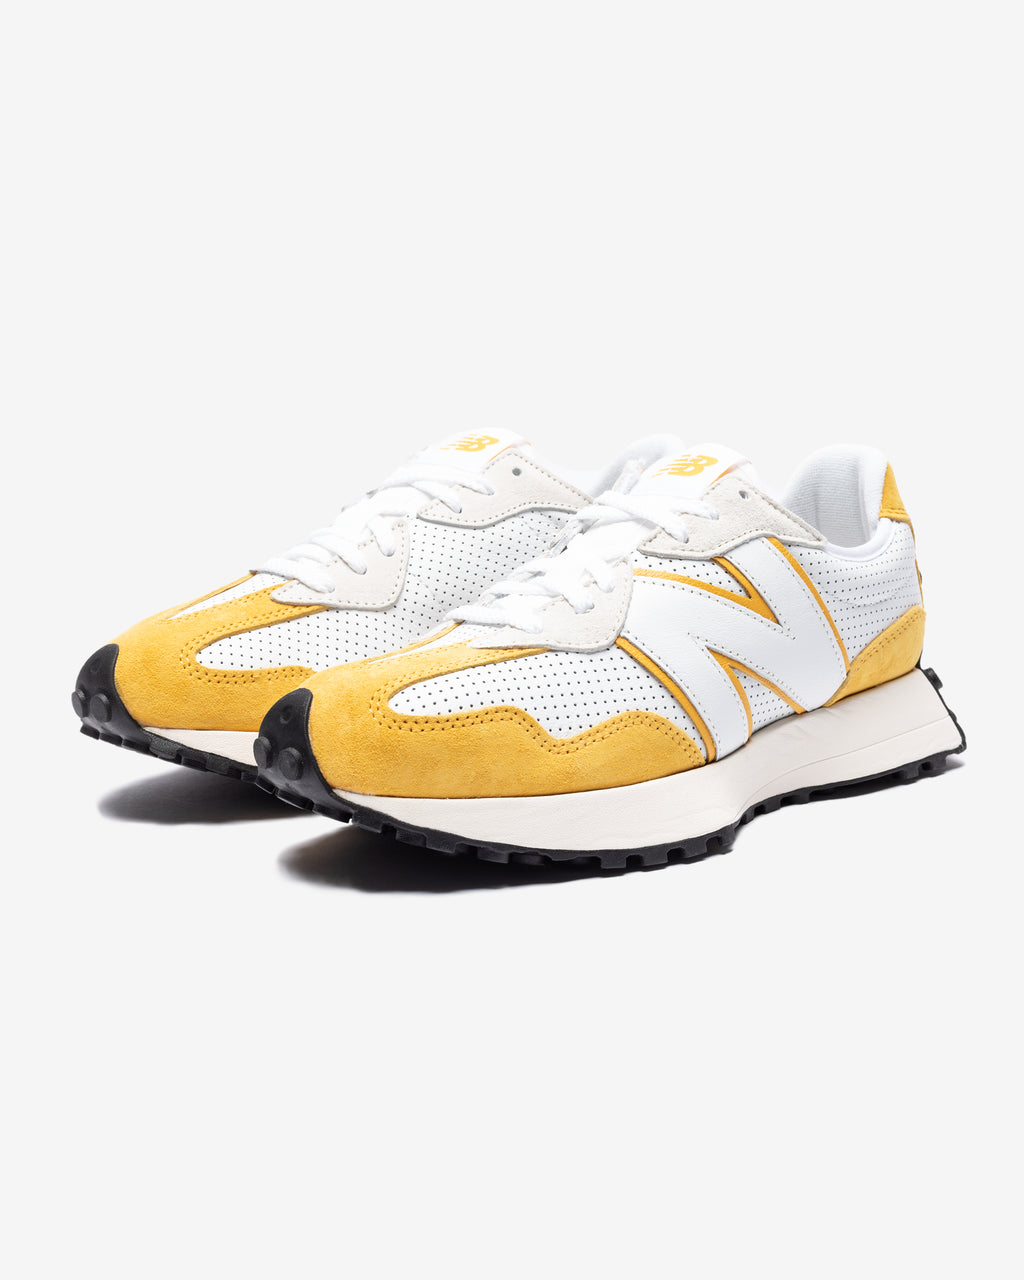 327 - WHITE/ YELLOW